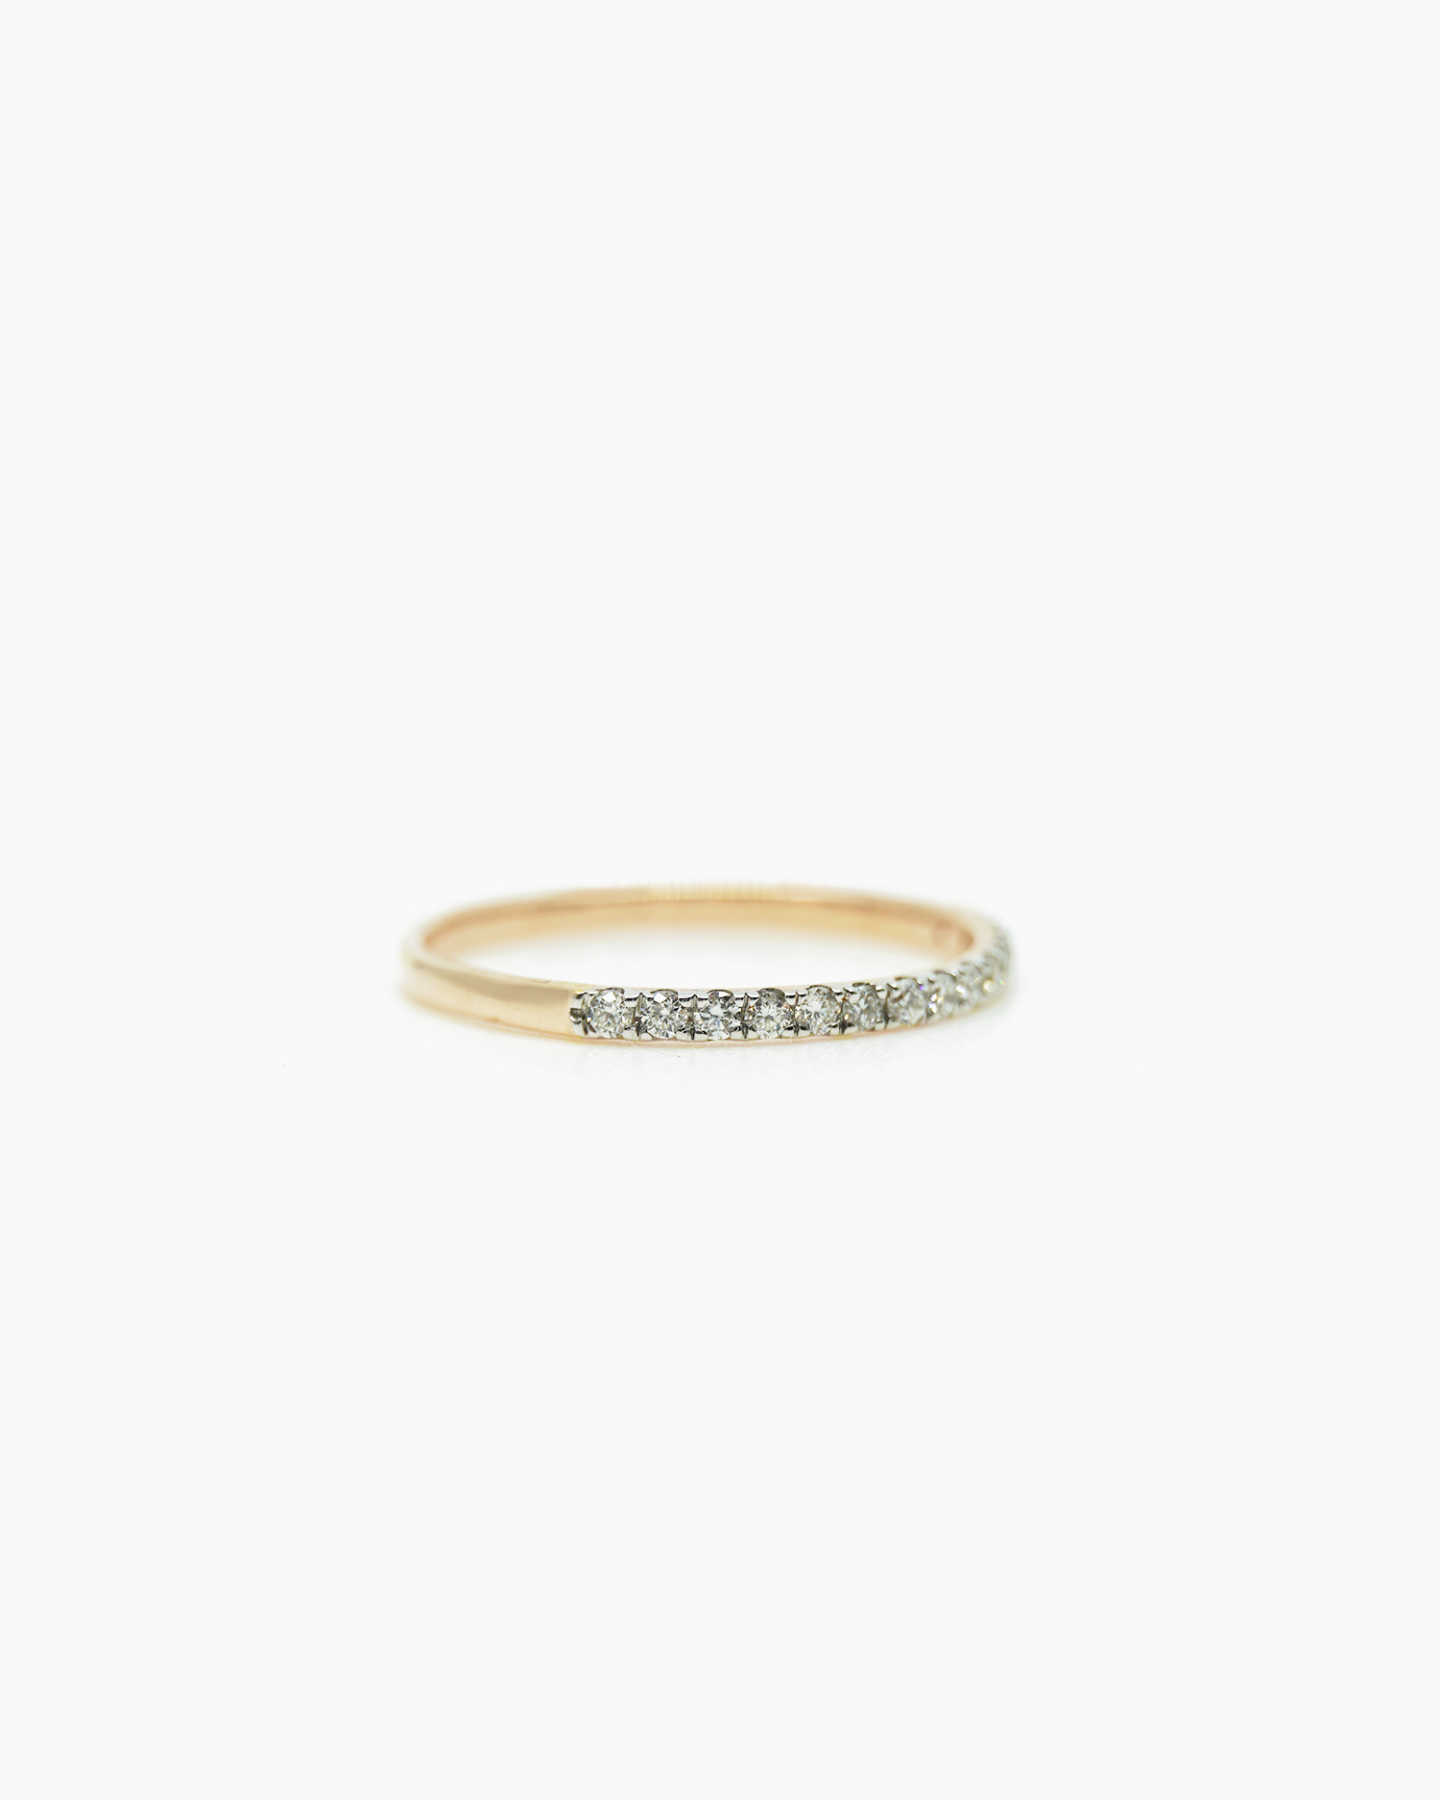 Diamond Wedding Band - Yellow Gold - 1